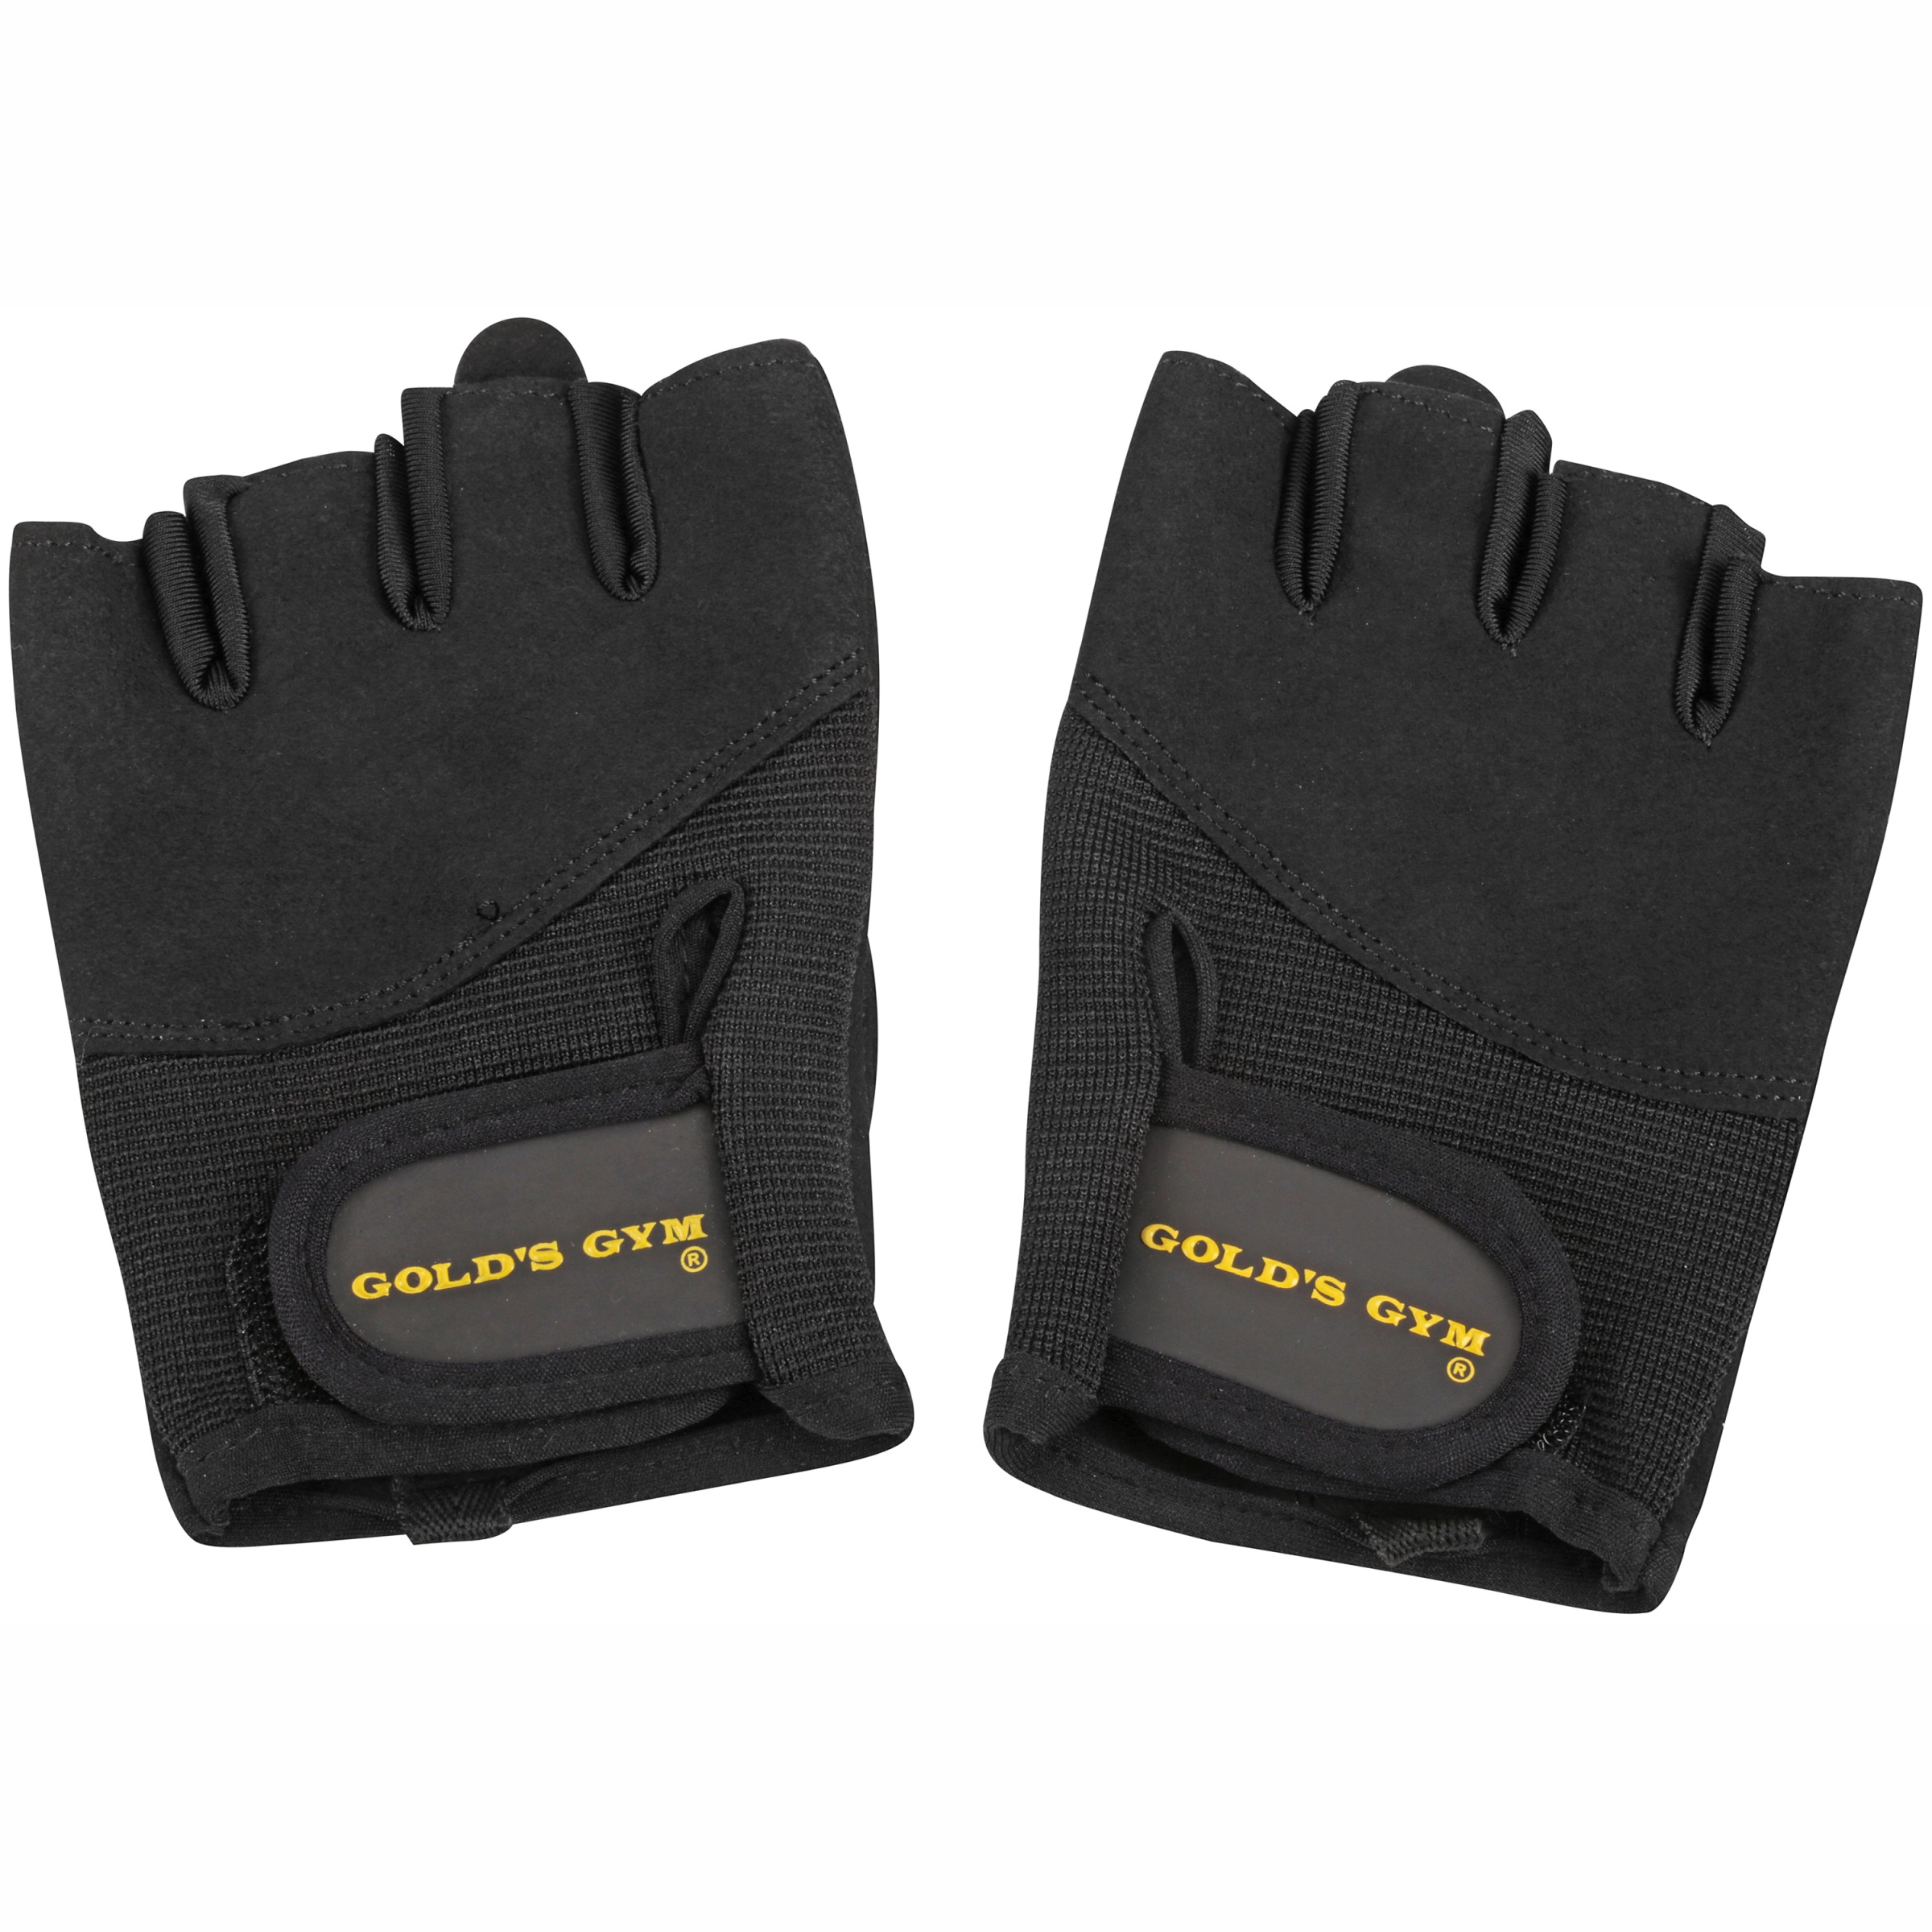 Gold's Gym Weight Lifting Gloves by Icon Health and Fitness Inc.